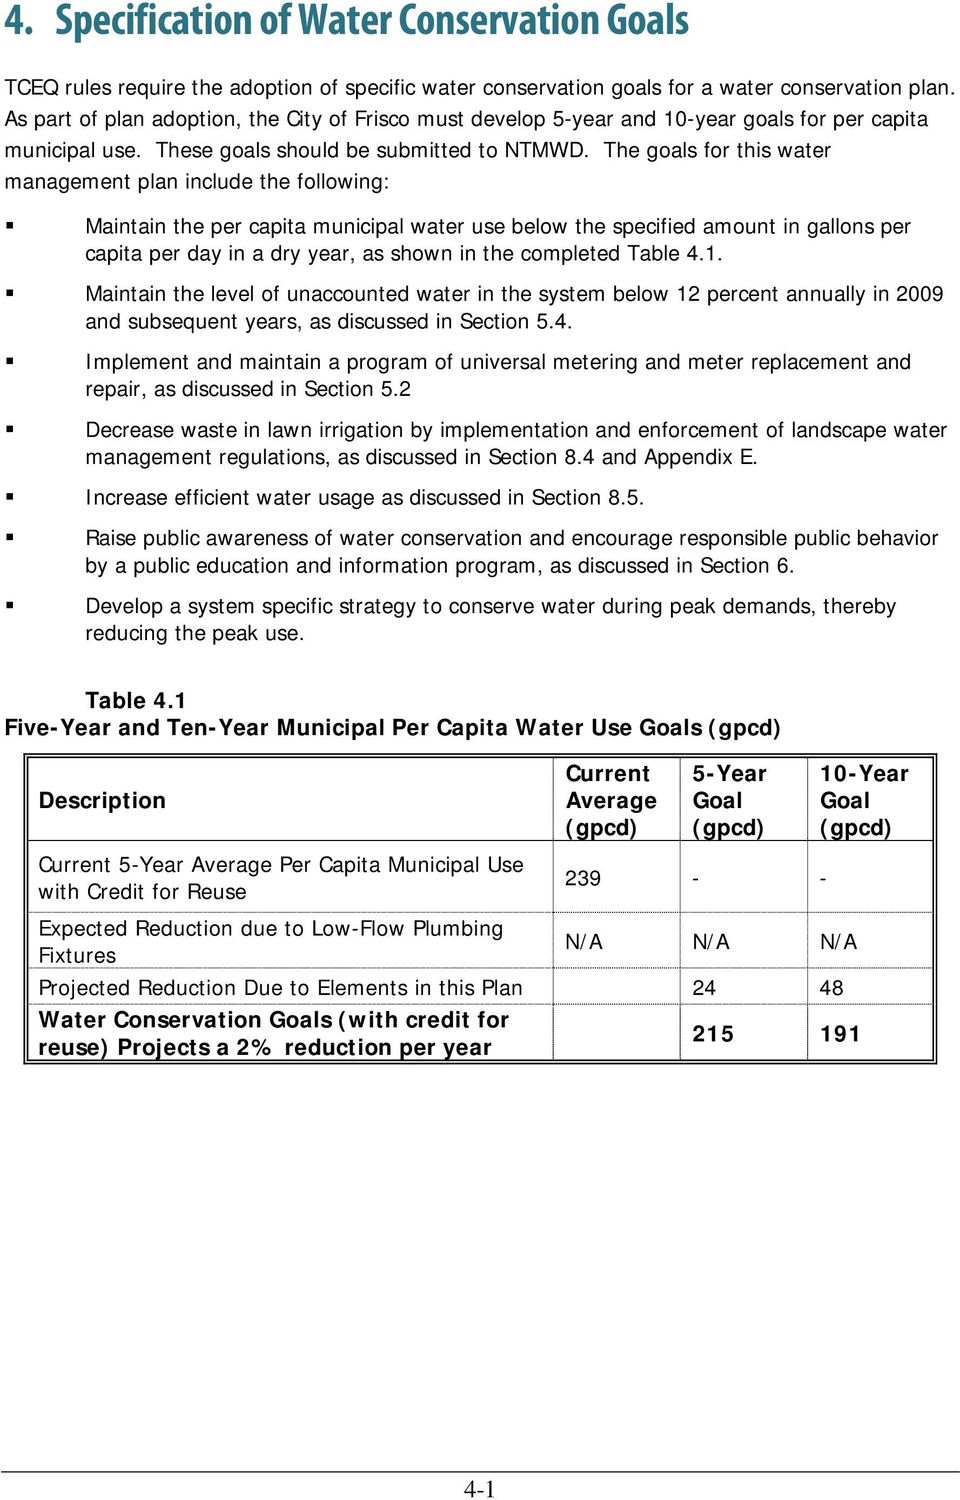 The goals for this water management plan include the following: Maintain the per capita municipal water use below the specified amount in gallons per capita per day in a dry year, as shown in the